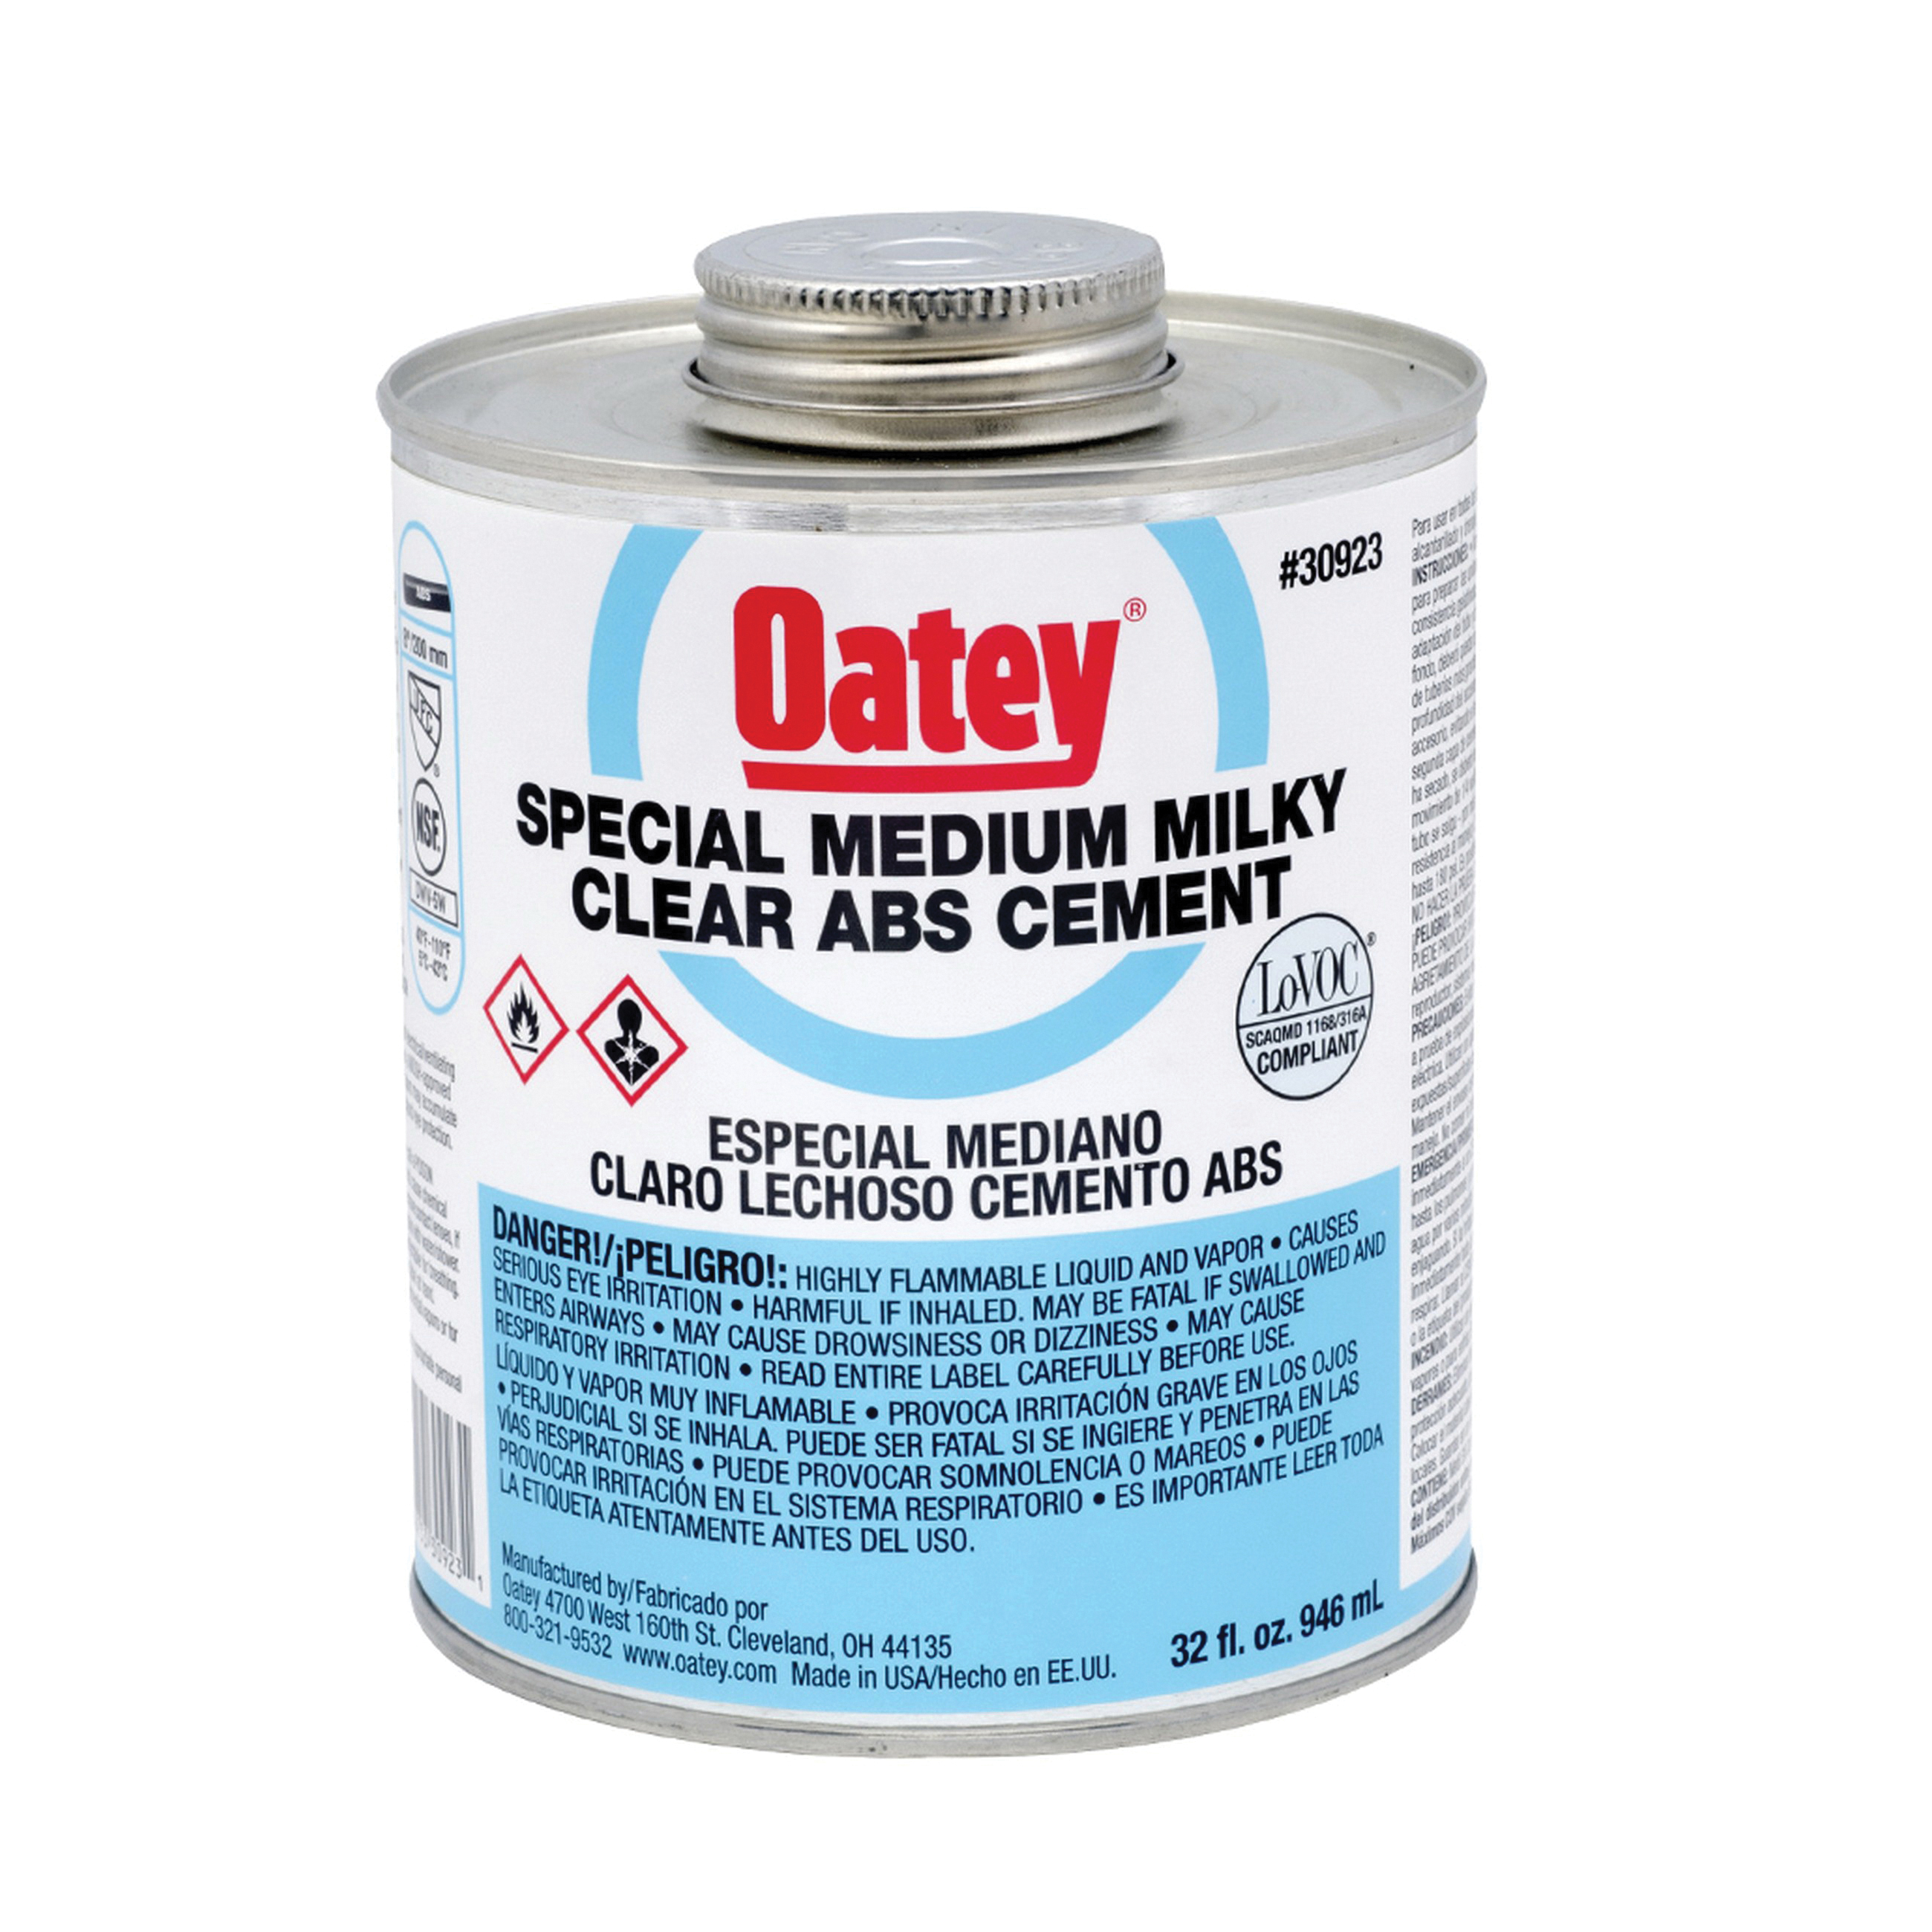 Oatey® 30923 Special Low VOC ABS Solvent Cement, 32 oz, Liquid, Milky Clear, 0.89 +/- 0.02